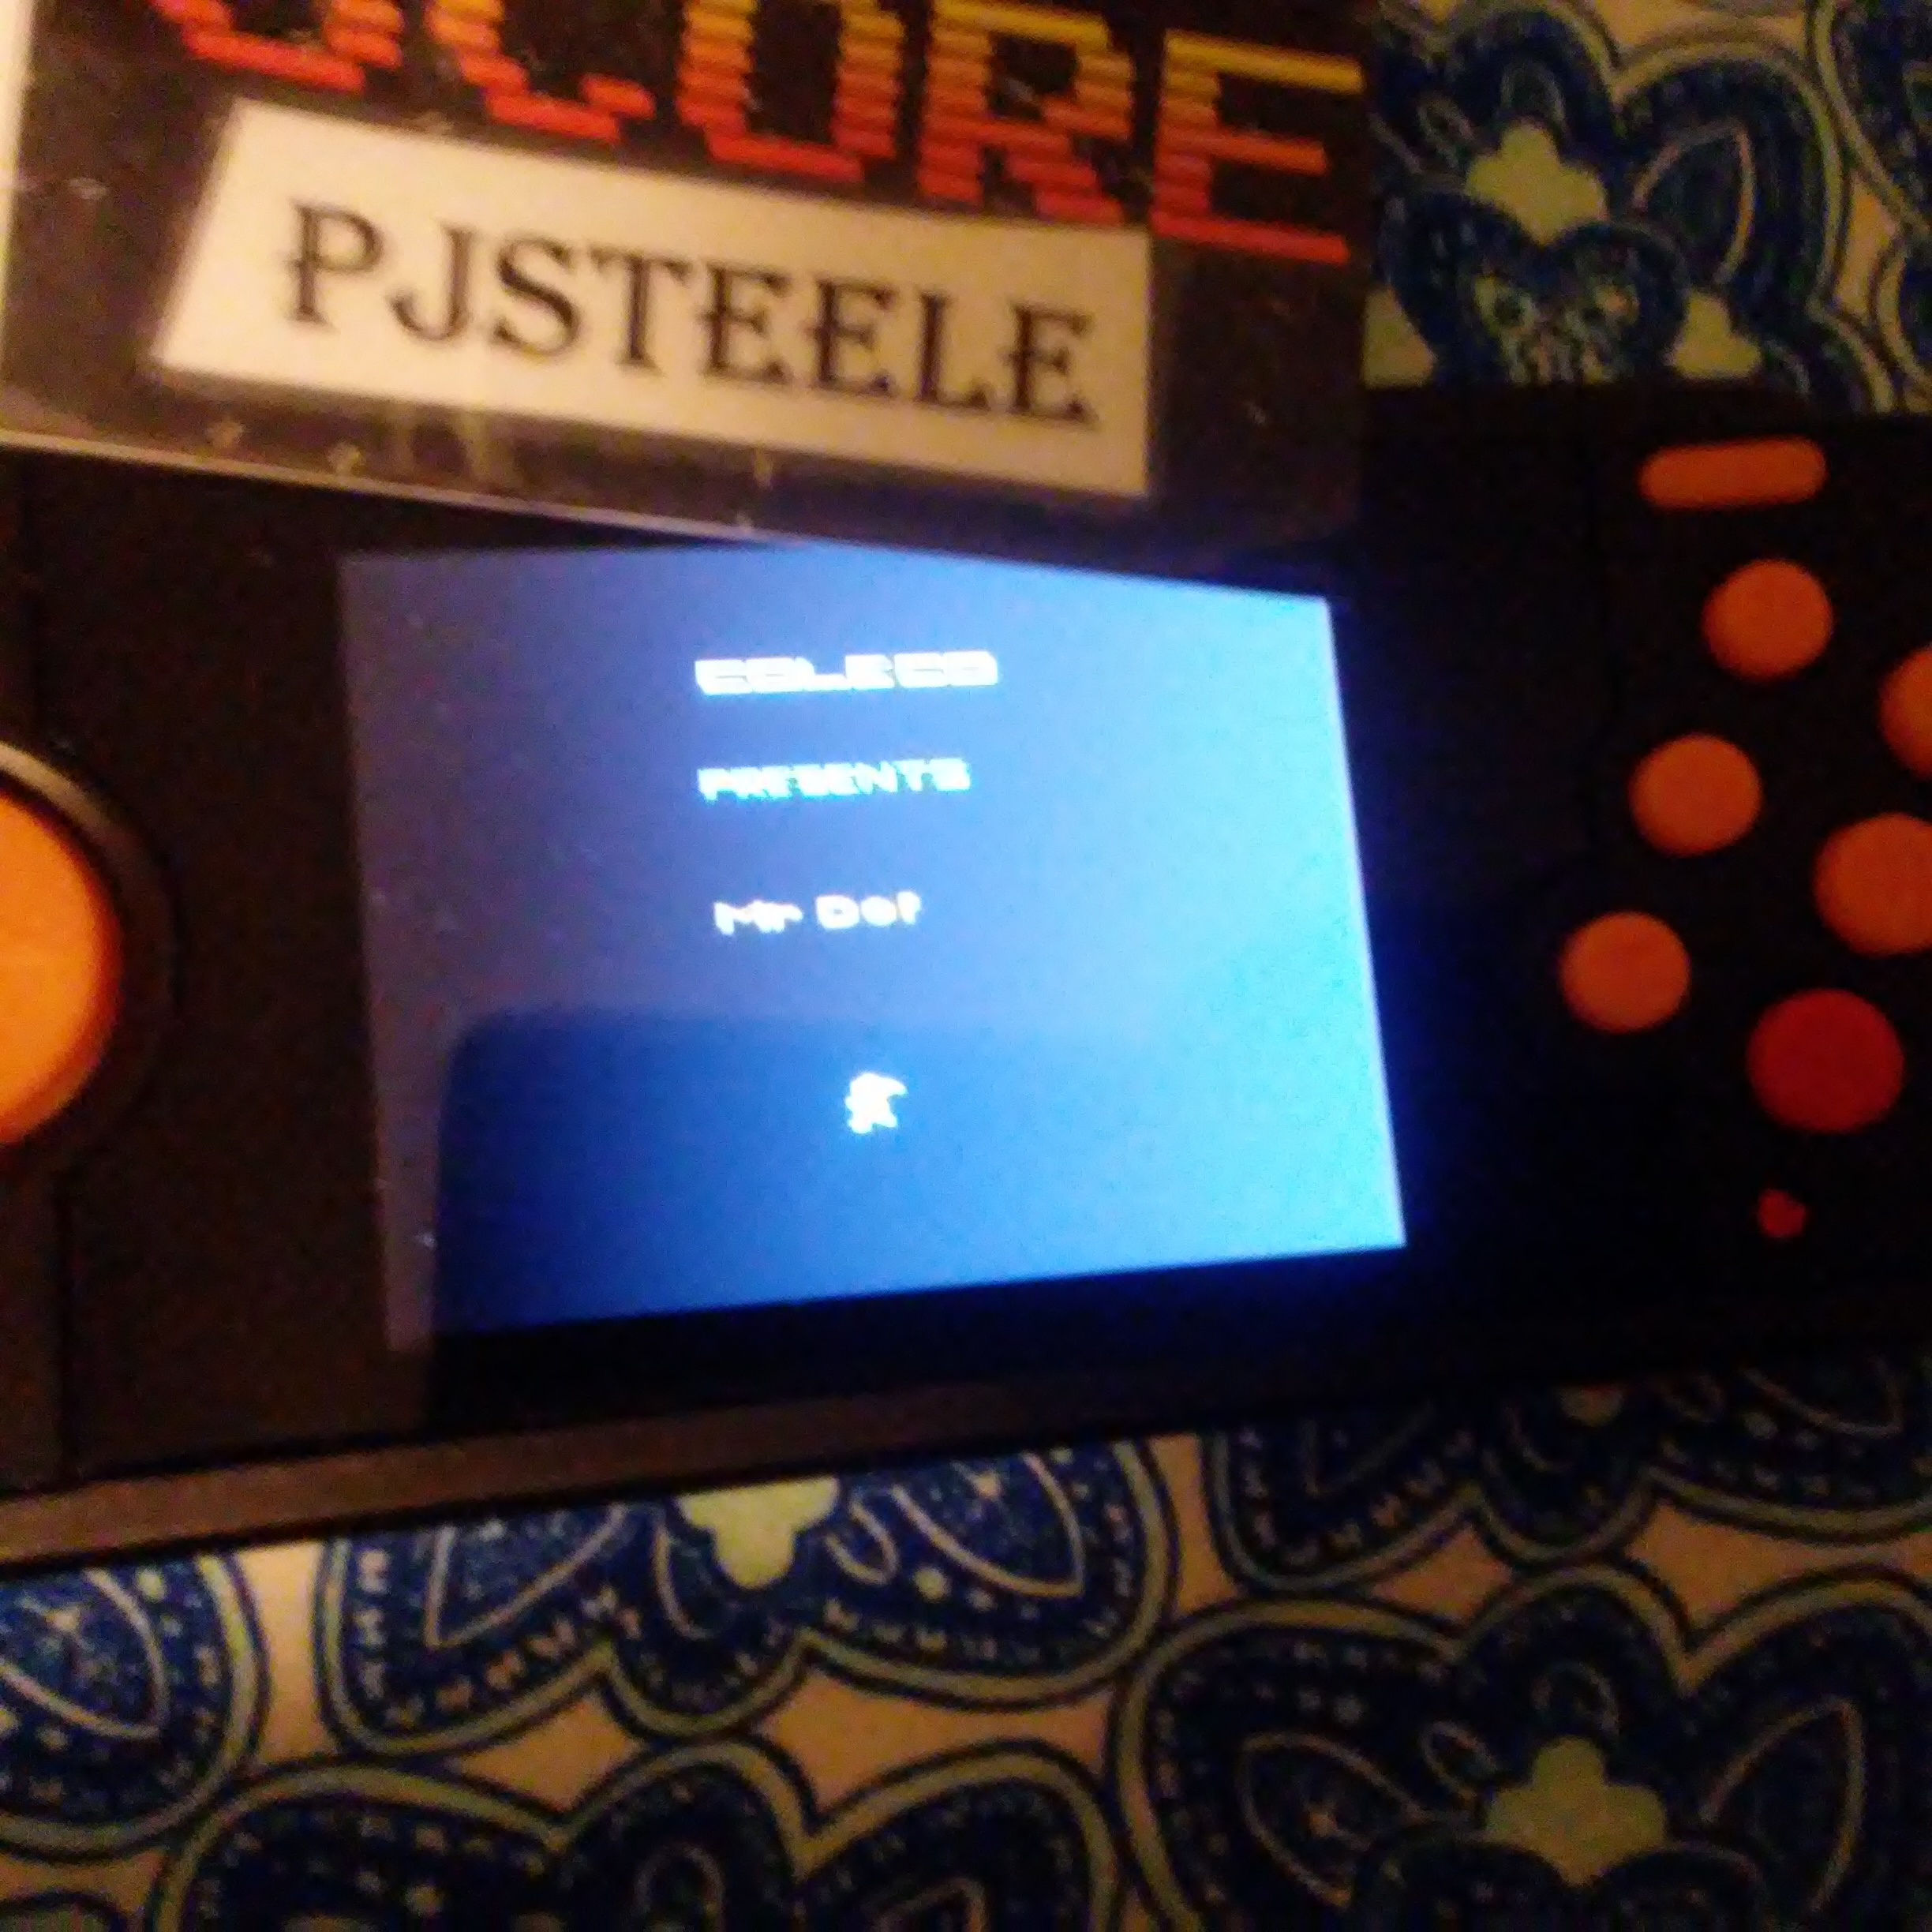 Pjsteele: Mr. Do! (Atari 2600 Emulated) 16,600 points on 2018-03-01 20:36:47